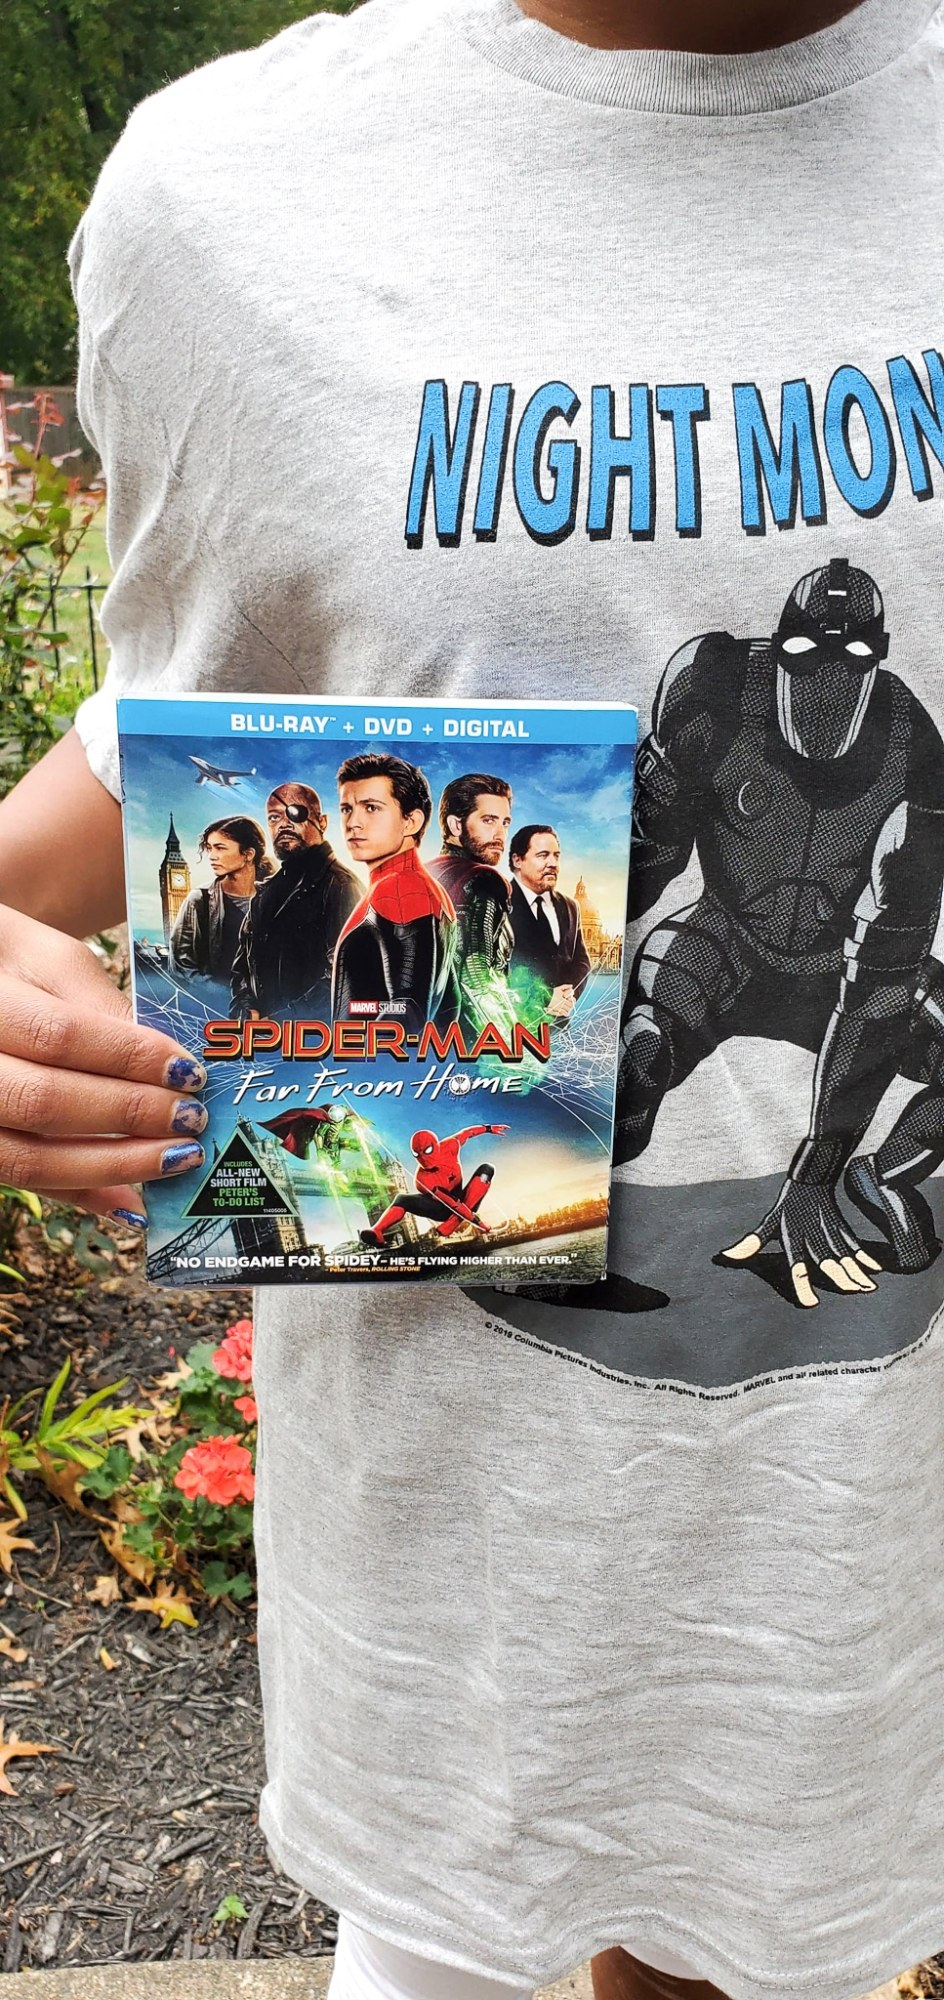 Spider-Man Far From Home DVD. Tom Holland returns as everyone's favorite web-slinger in SPIDER-MAN: FAR FROM HOME, the next chapter after Spider-Man: Homecoming.